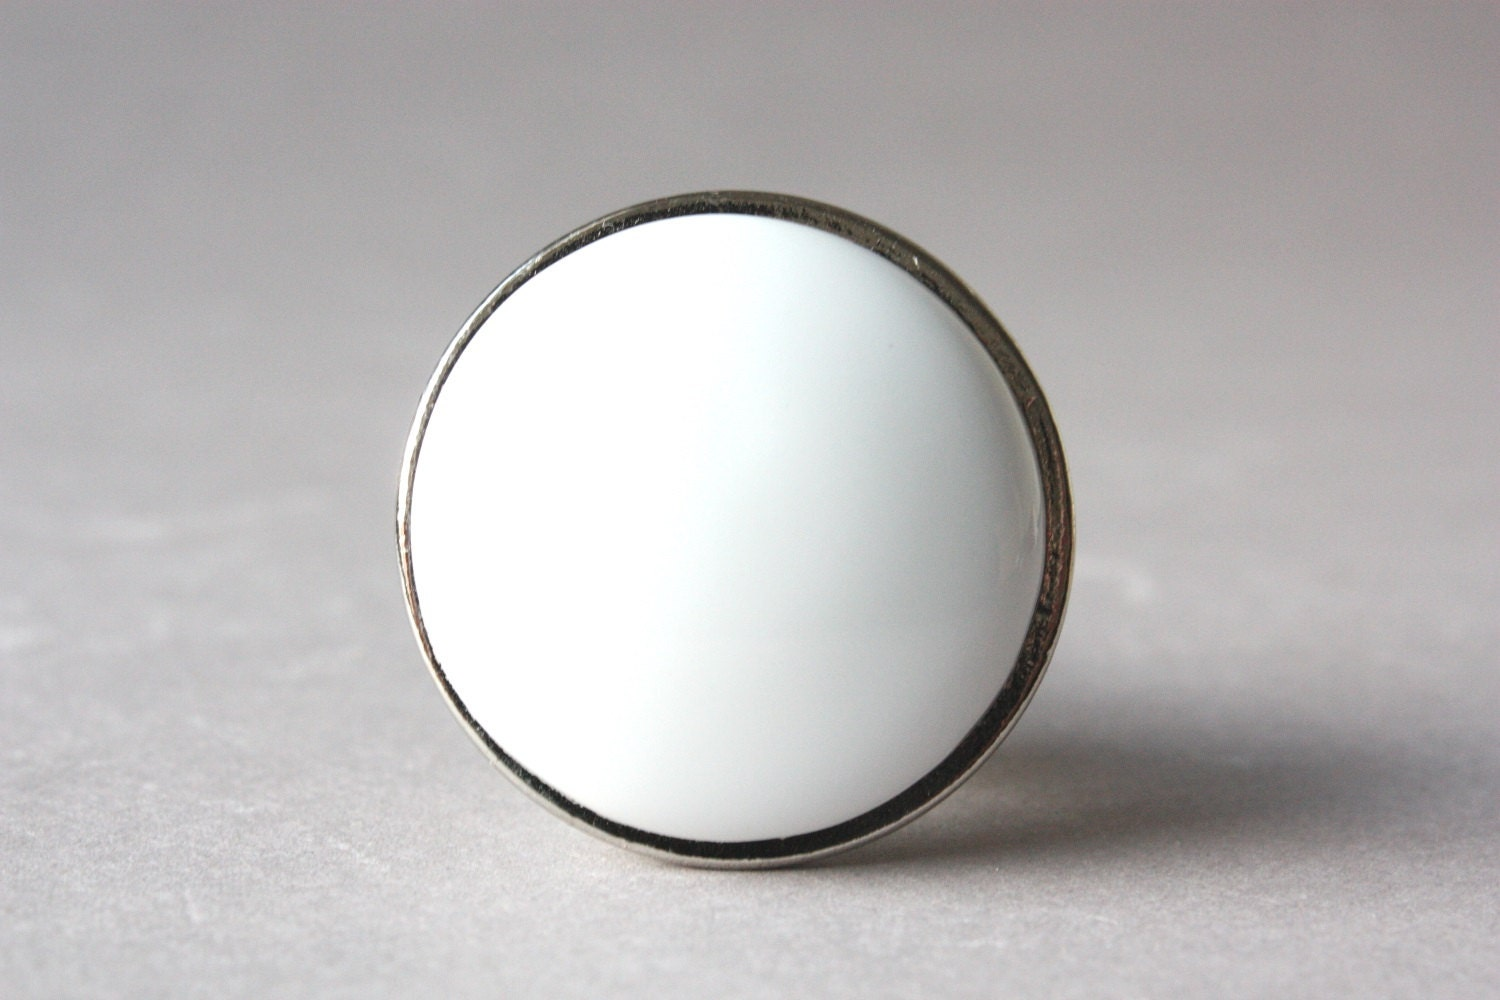 4 White Door Knobs Round Modern Drawer Pulls Upcycling